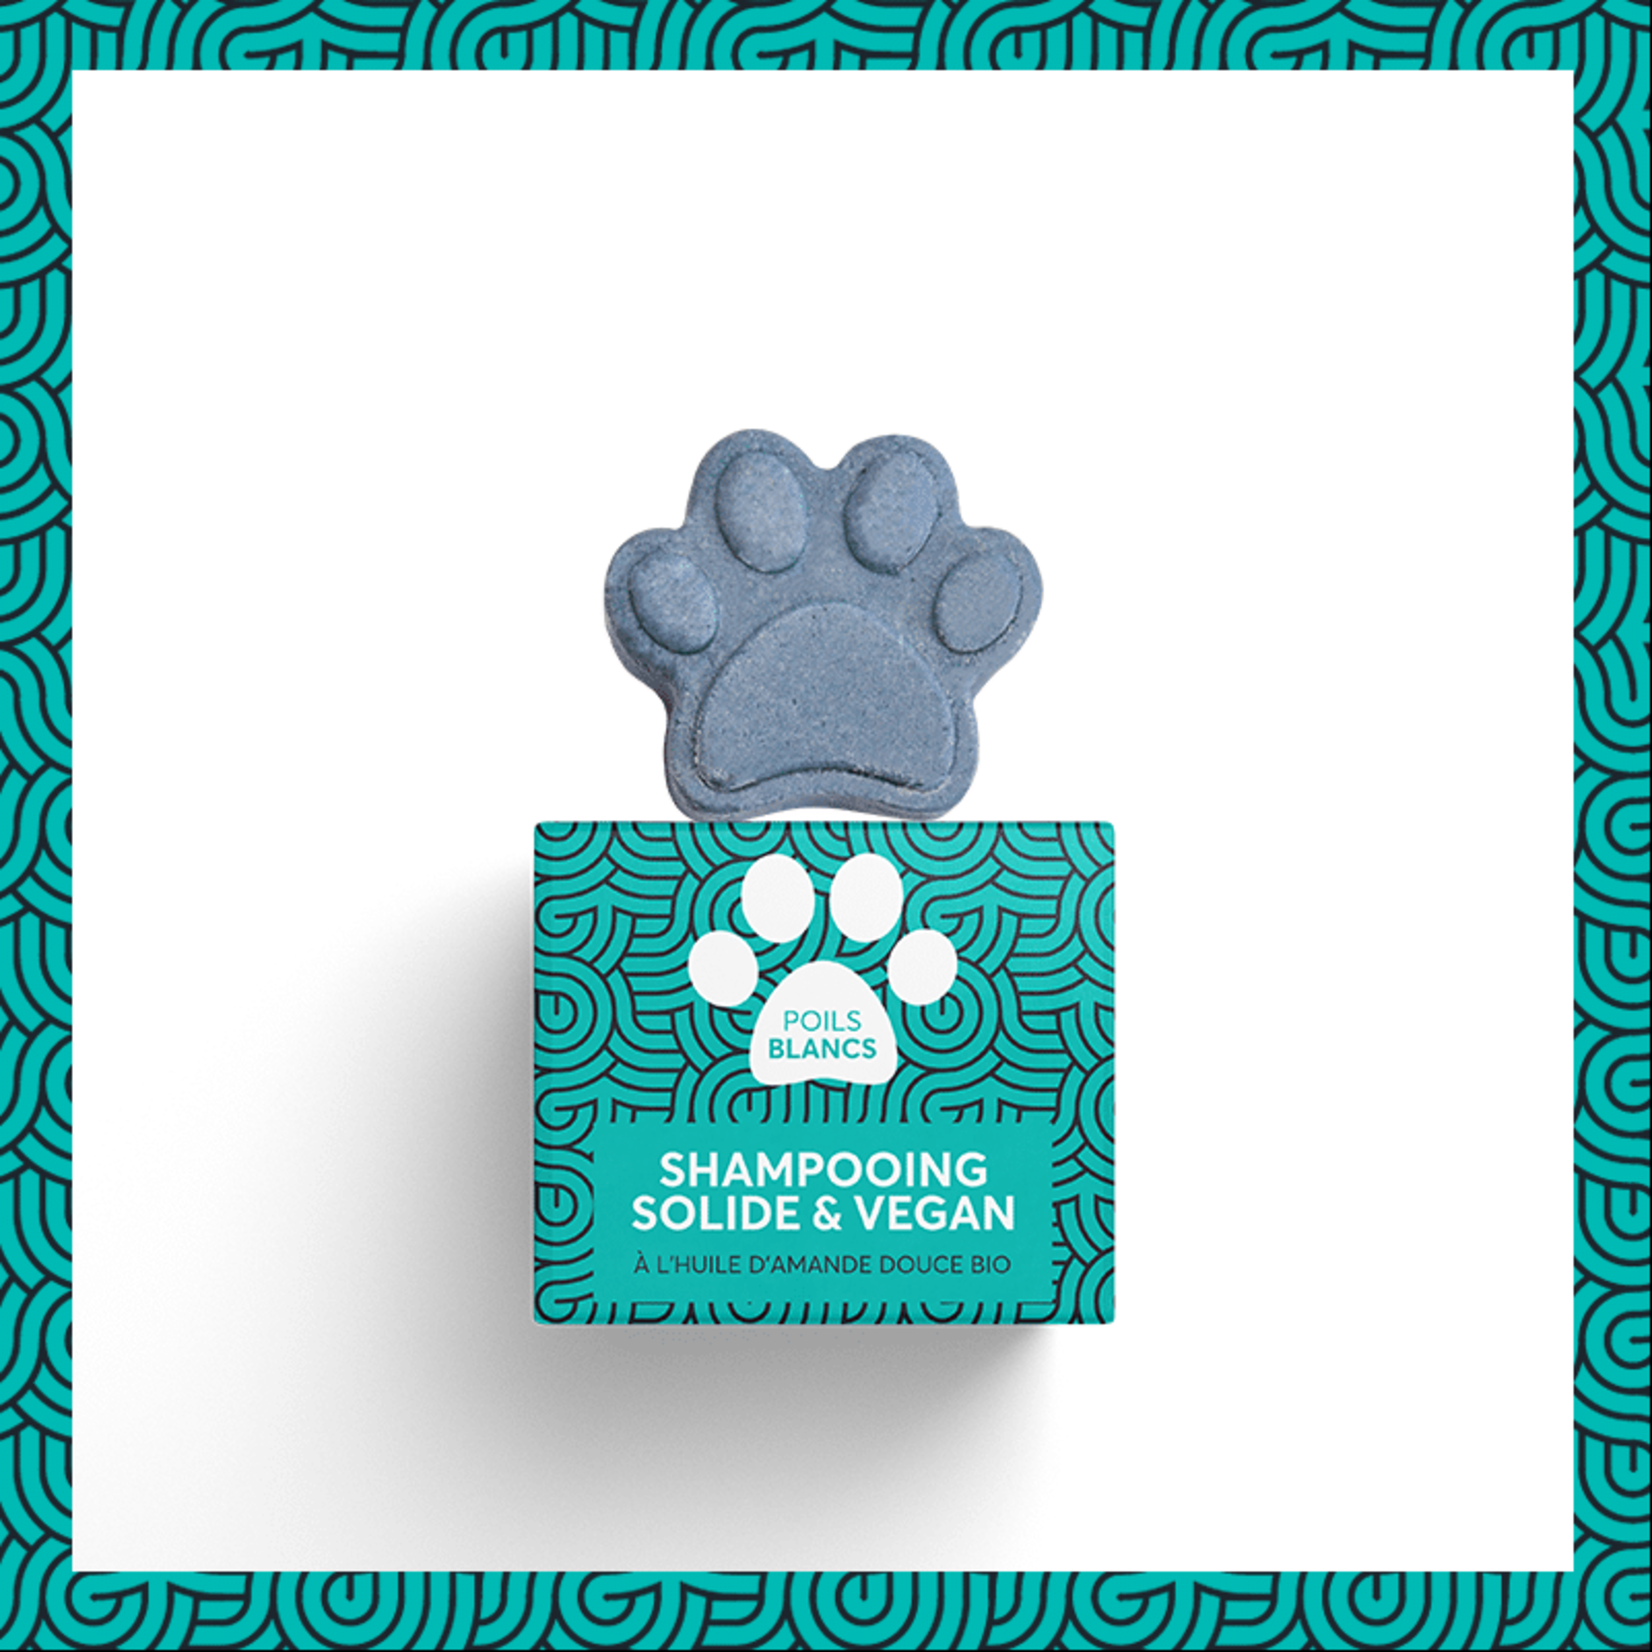 Pepet's PEPET'S Vegan Solid Shampoo for pets - White Coat